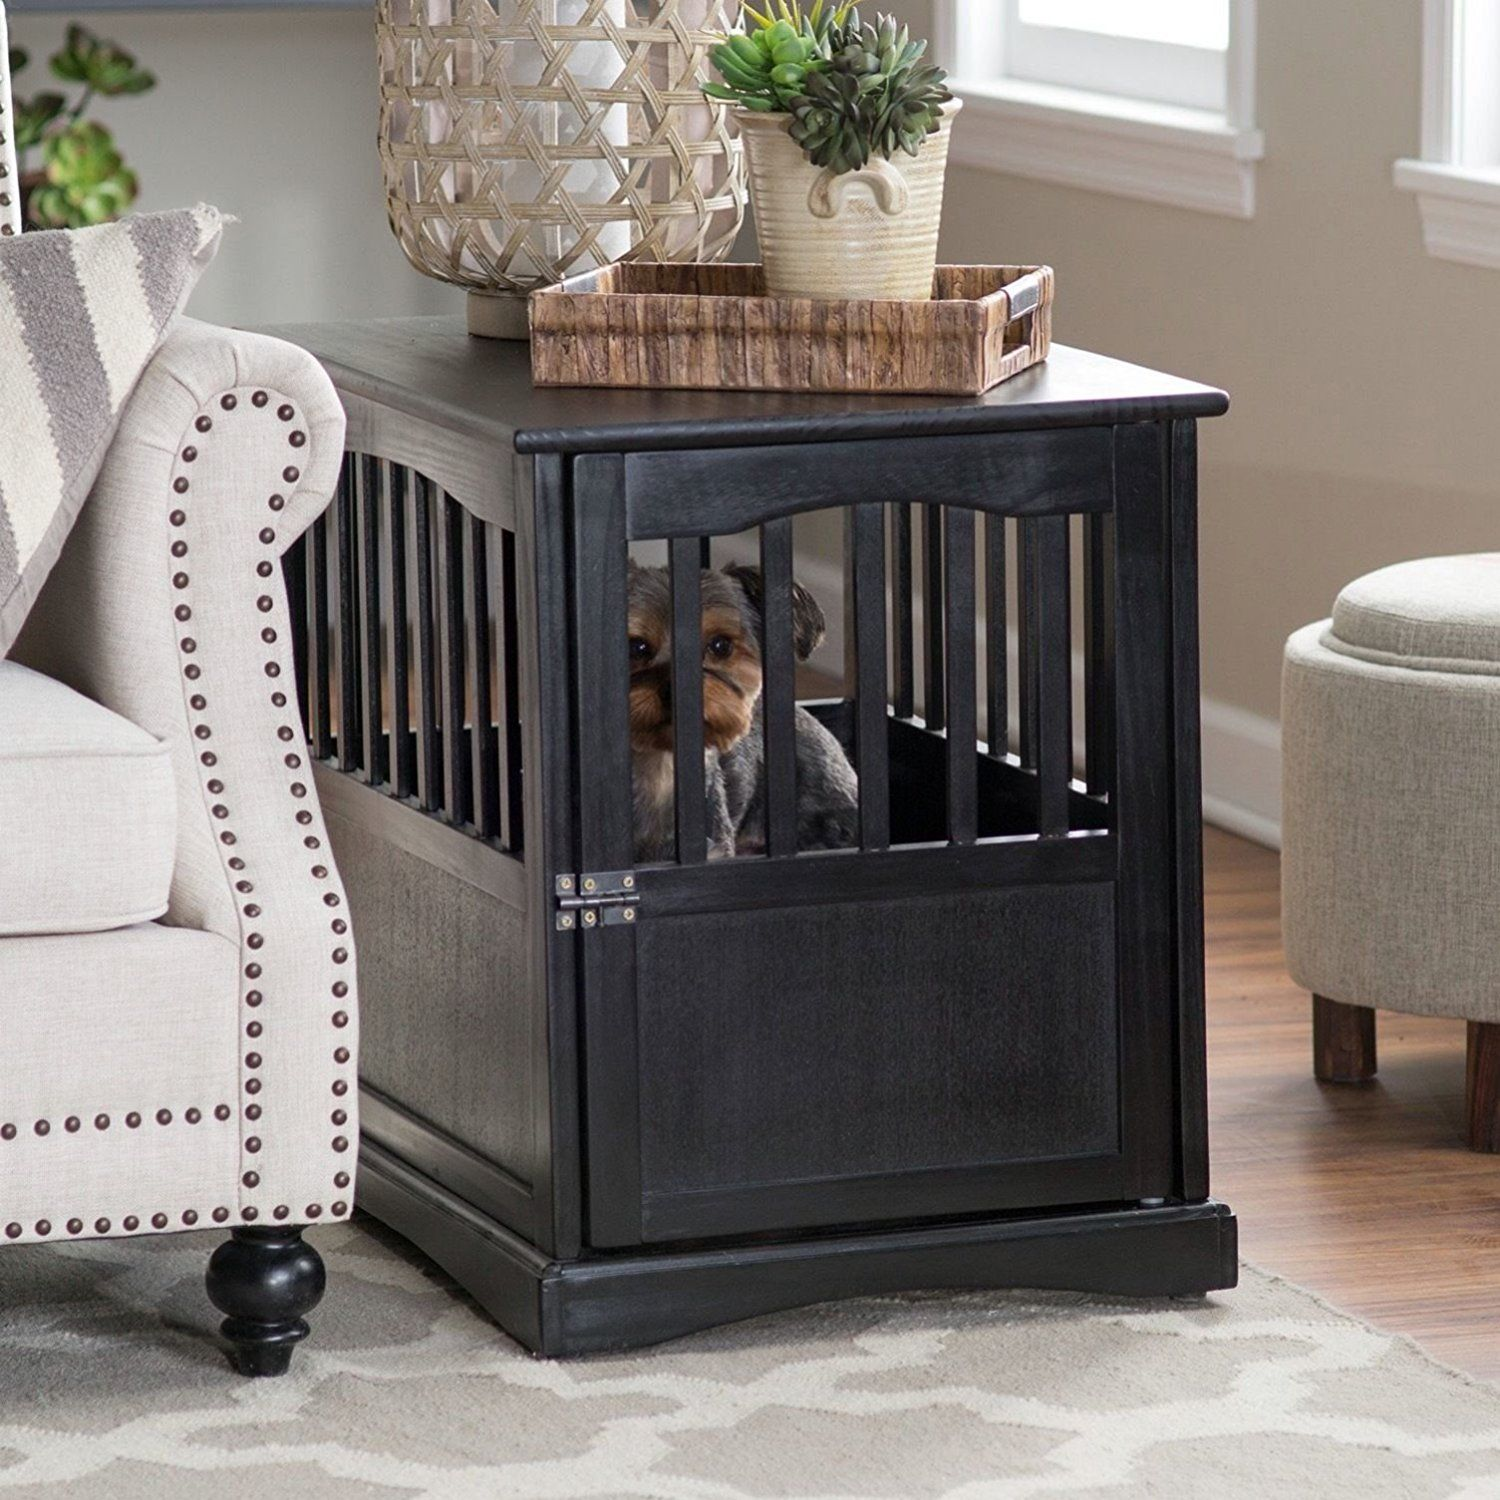 dog crate furniture dog crate end table decorative dog crates  - dog crate furniture dog crate end table decorative dog crates